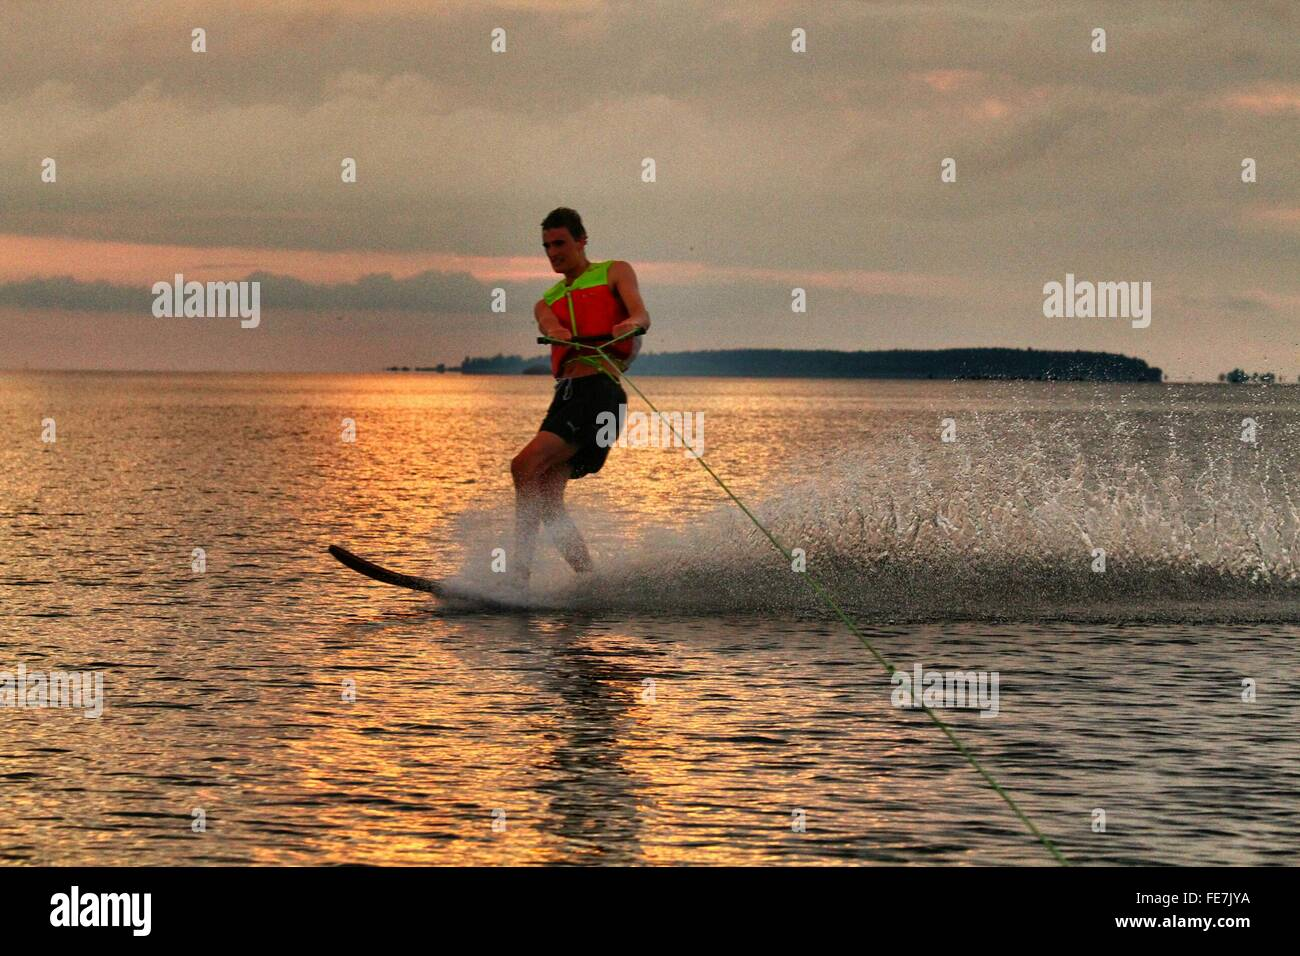 Full Length Of Man Wakeboarding - Stock Image